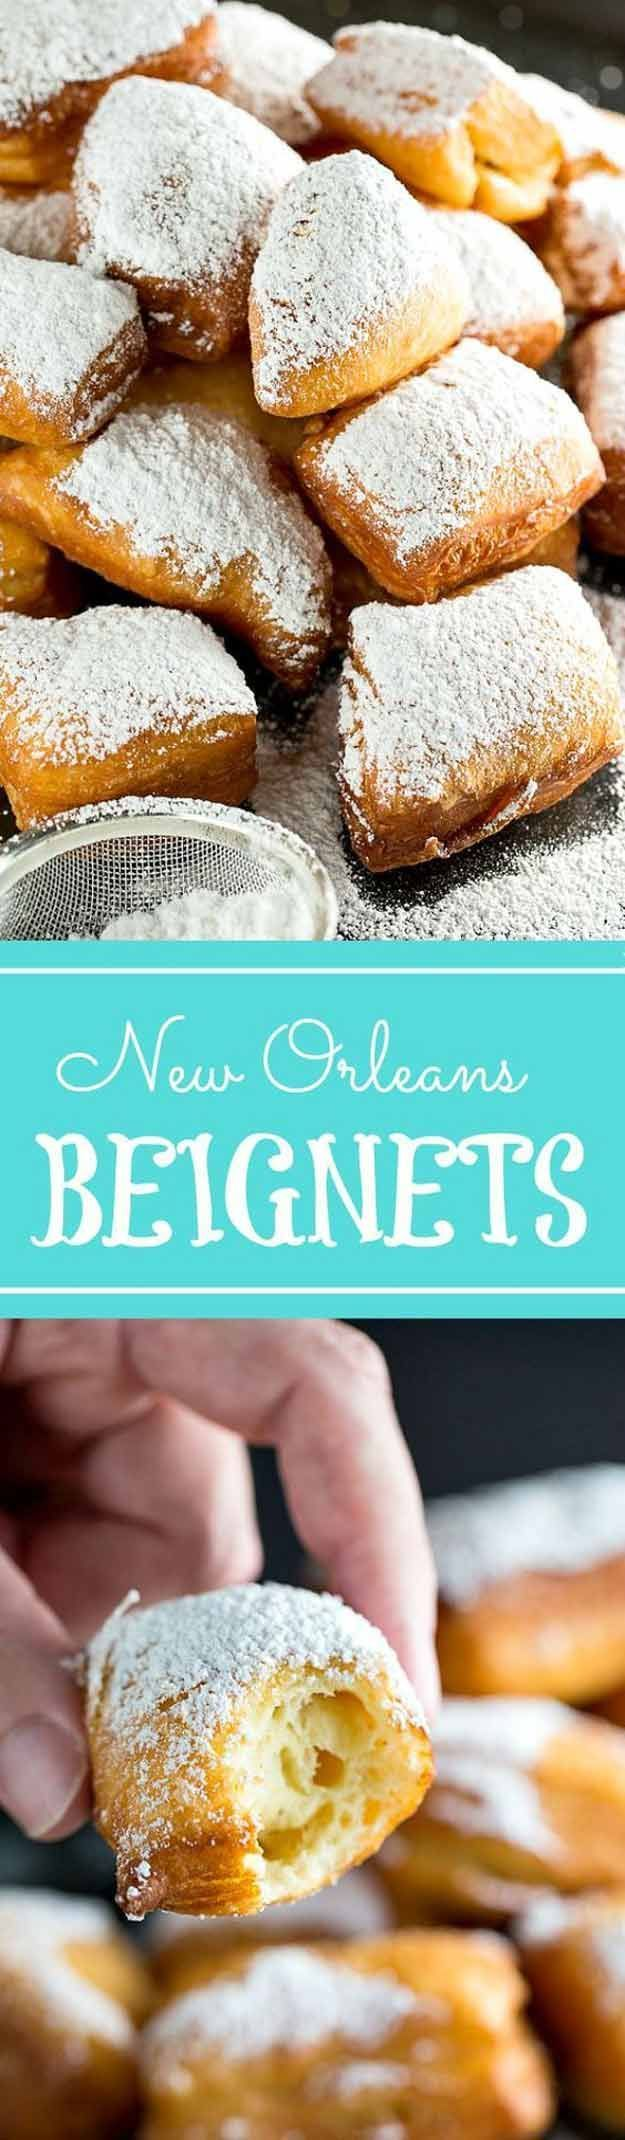 Homemade Beignets | 23 Festive Fat Tuesday Ideas | Mardi Gras Party - Fun DIY Crafts, Costumes, Party Decorations, Food Recipes And More! by Pioneer Settler at http://pioneersettler.com/fat-tuesday-party/